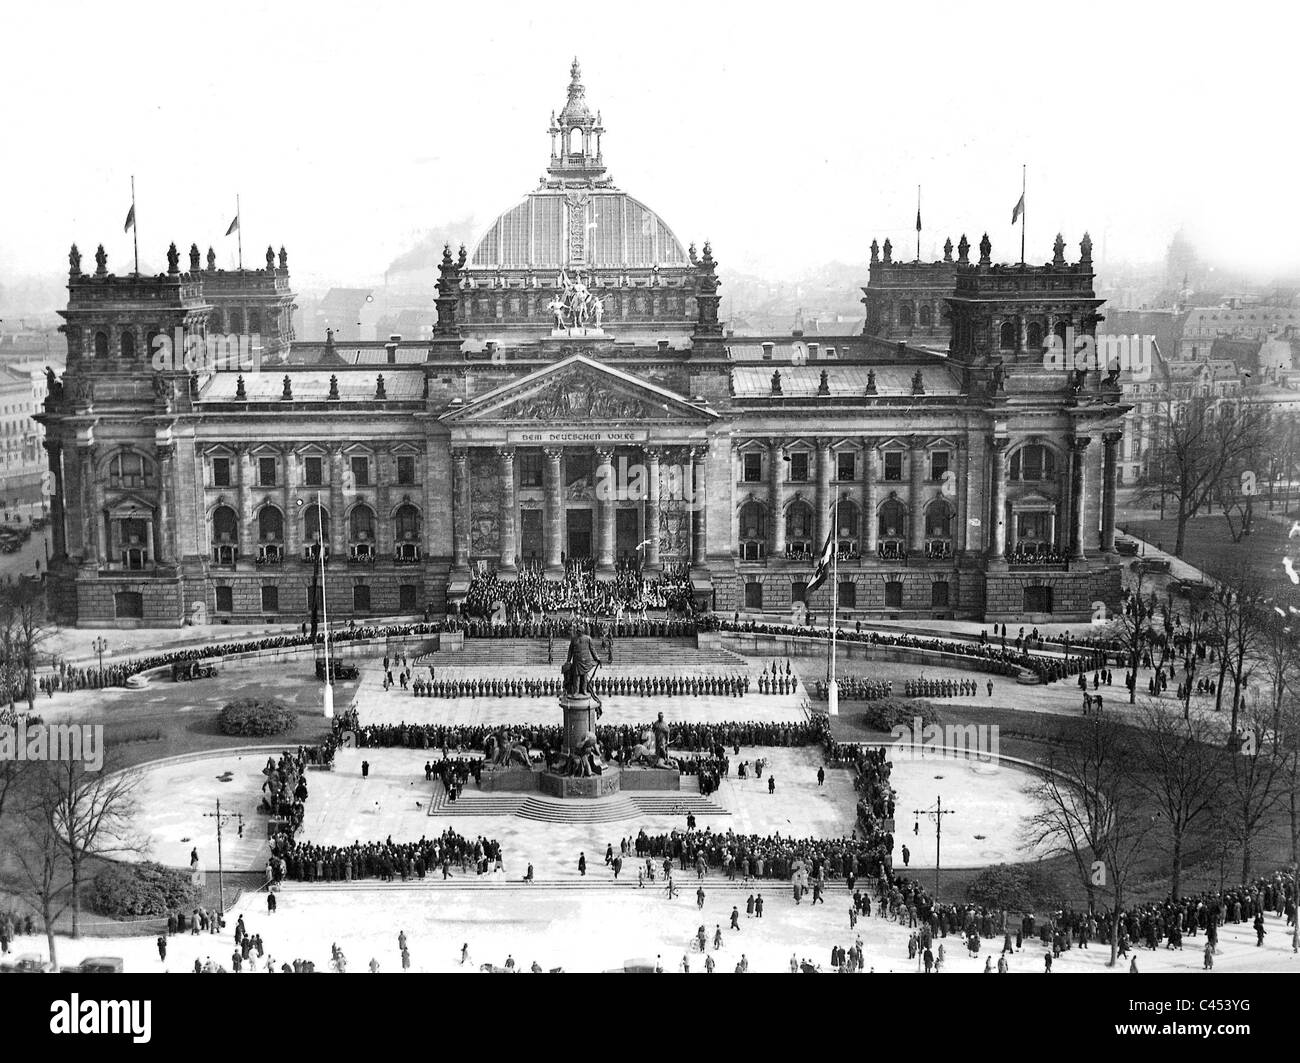 Reichstag 1932 Stock Photos & Reichstag 1932 Stock Images ...  Reichstag 1932 ...